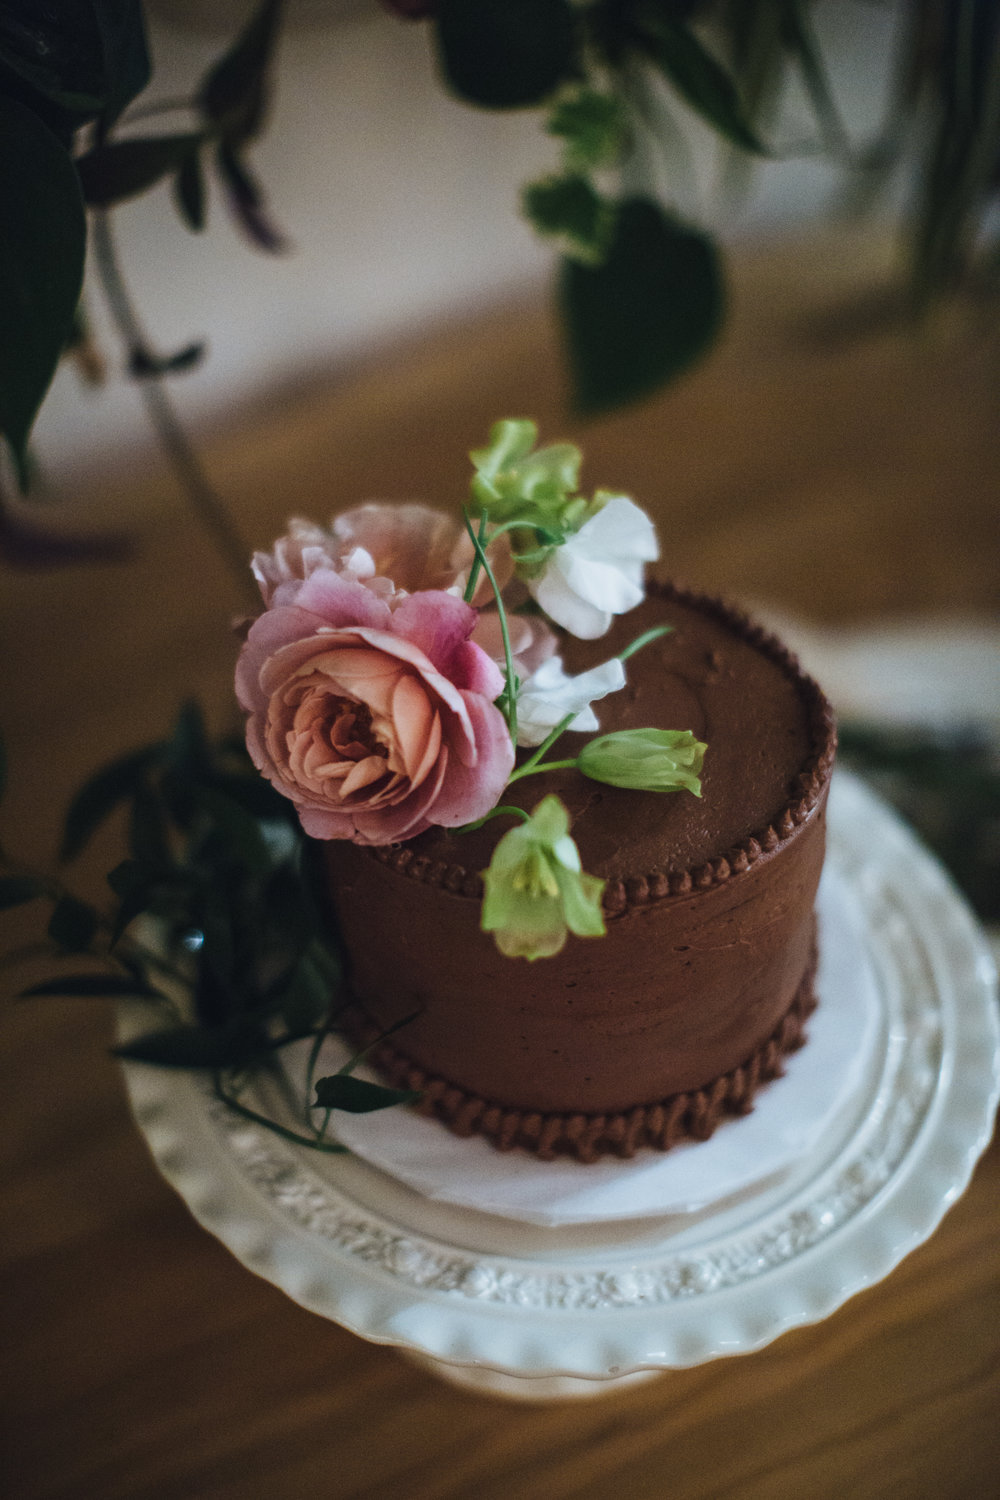 Mini Chocolate Wedding Cake with Fresh Flowers, Joy The Baker, Art & Soul Events, Photographer: Rad + In Love